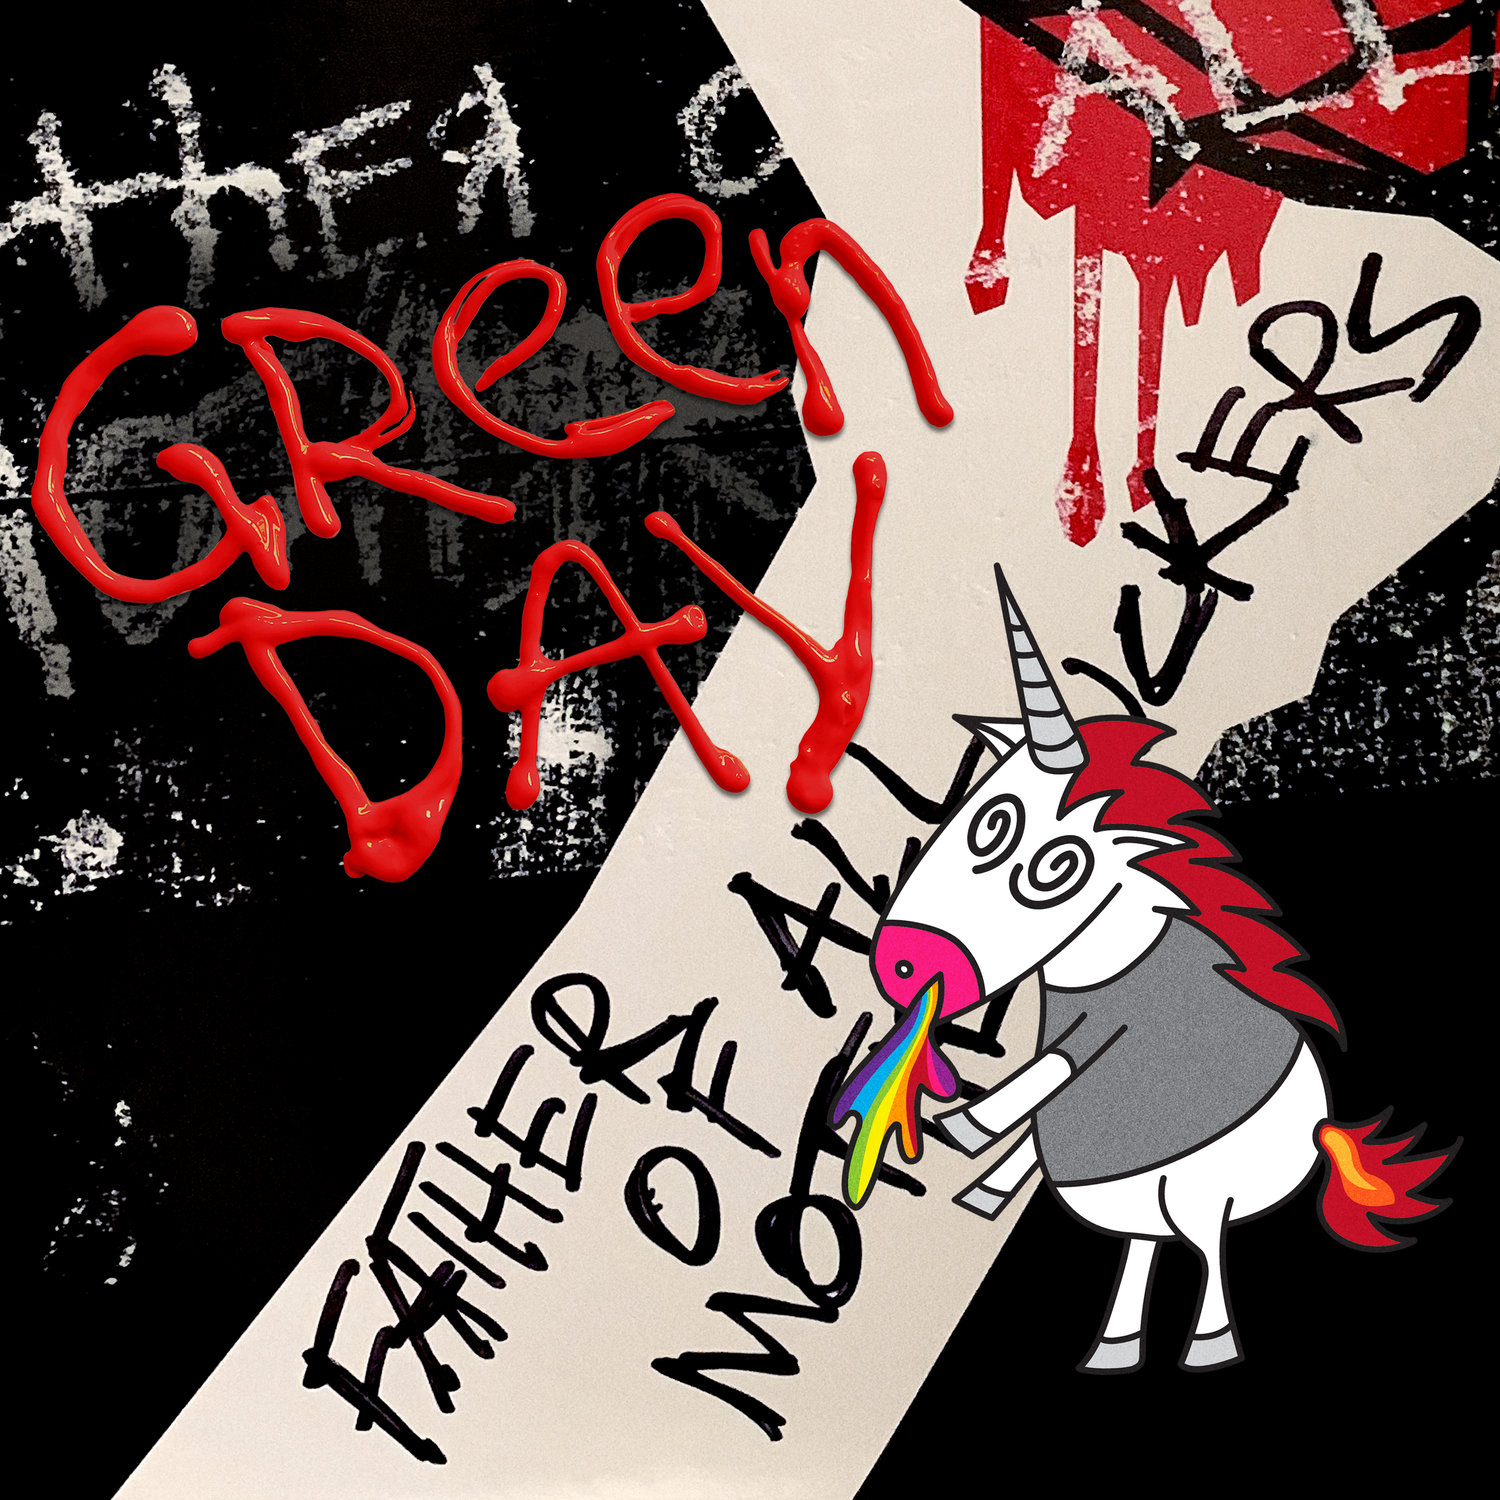 Green Day Tour 2020.Green Day